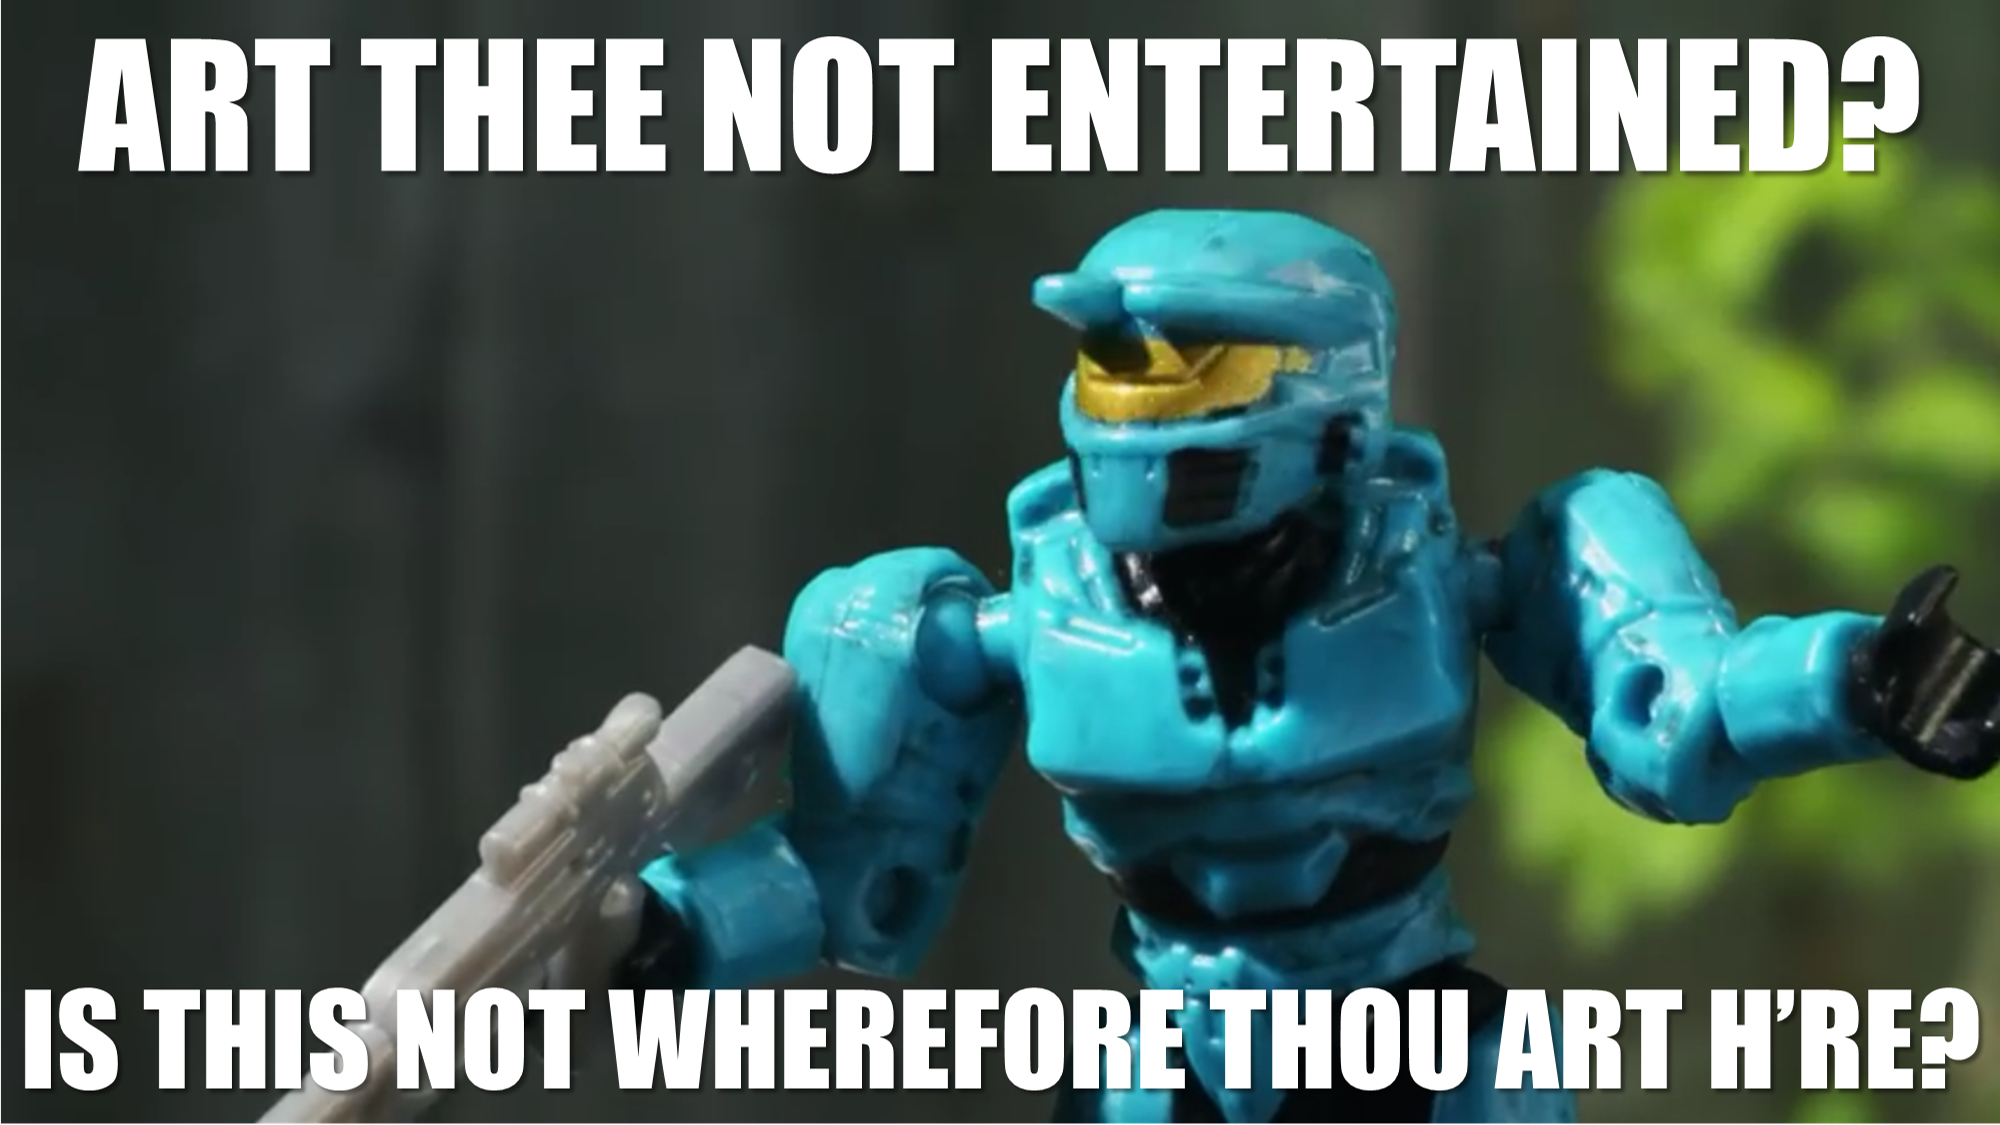 af0 church's question to the world red vs blue know your meme